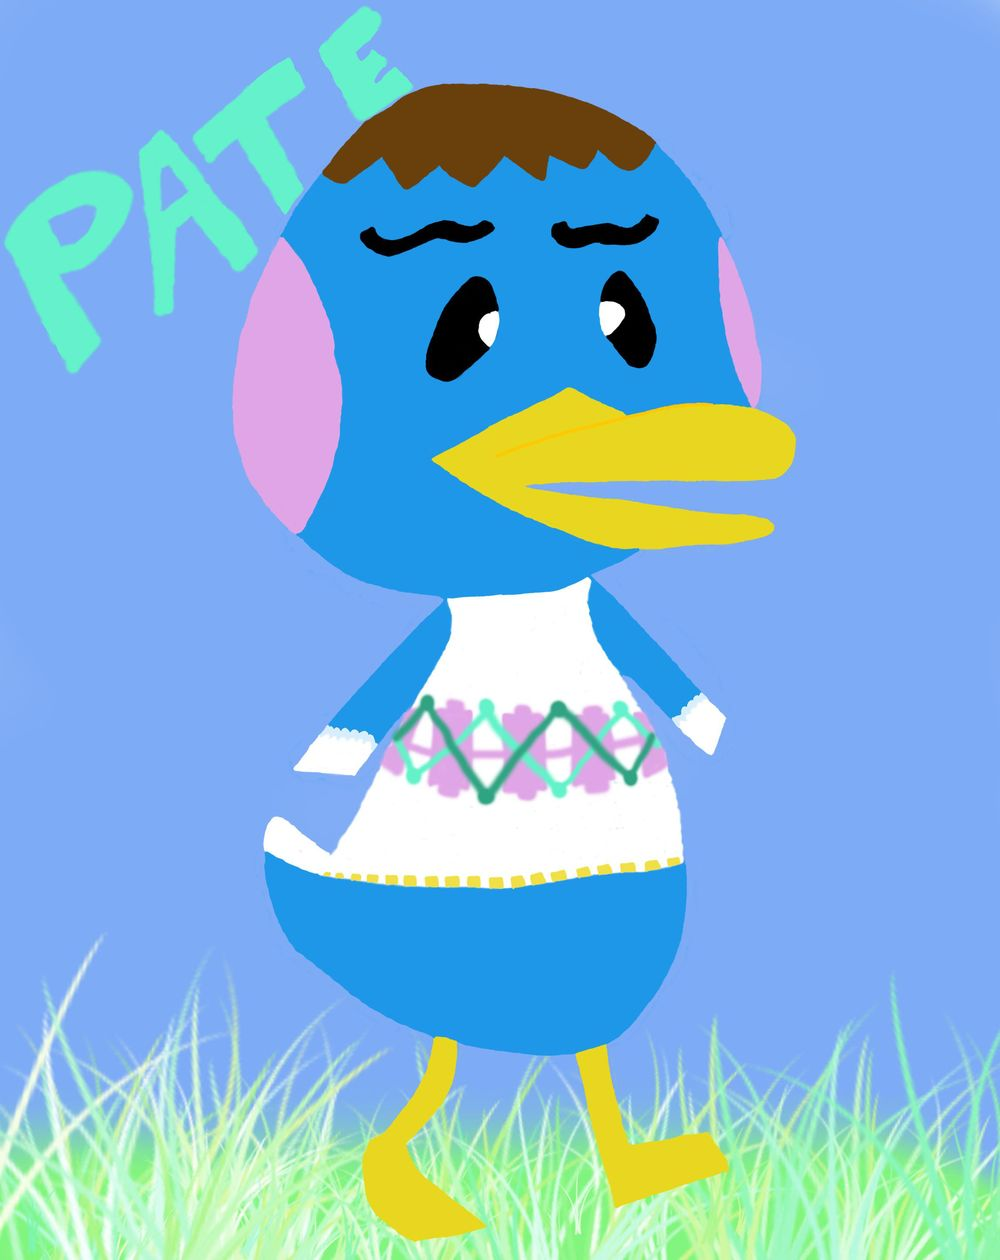 Animal Crossing Villager: Pate the Peppy Duck - image 3 - student project